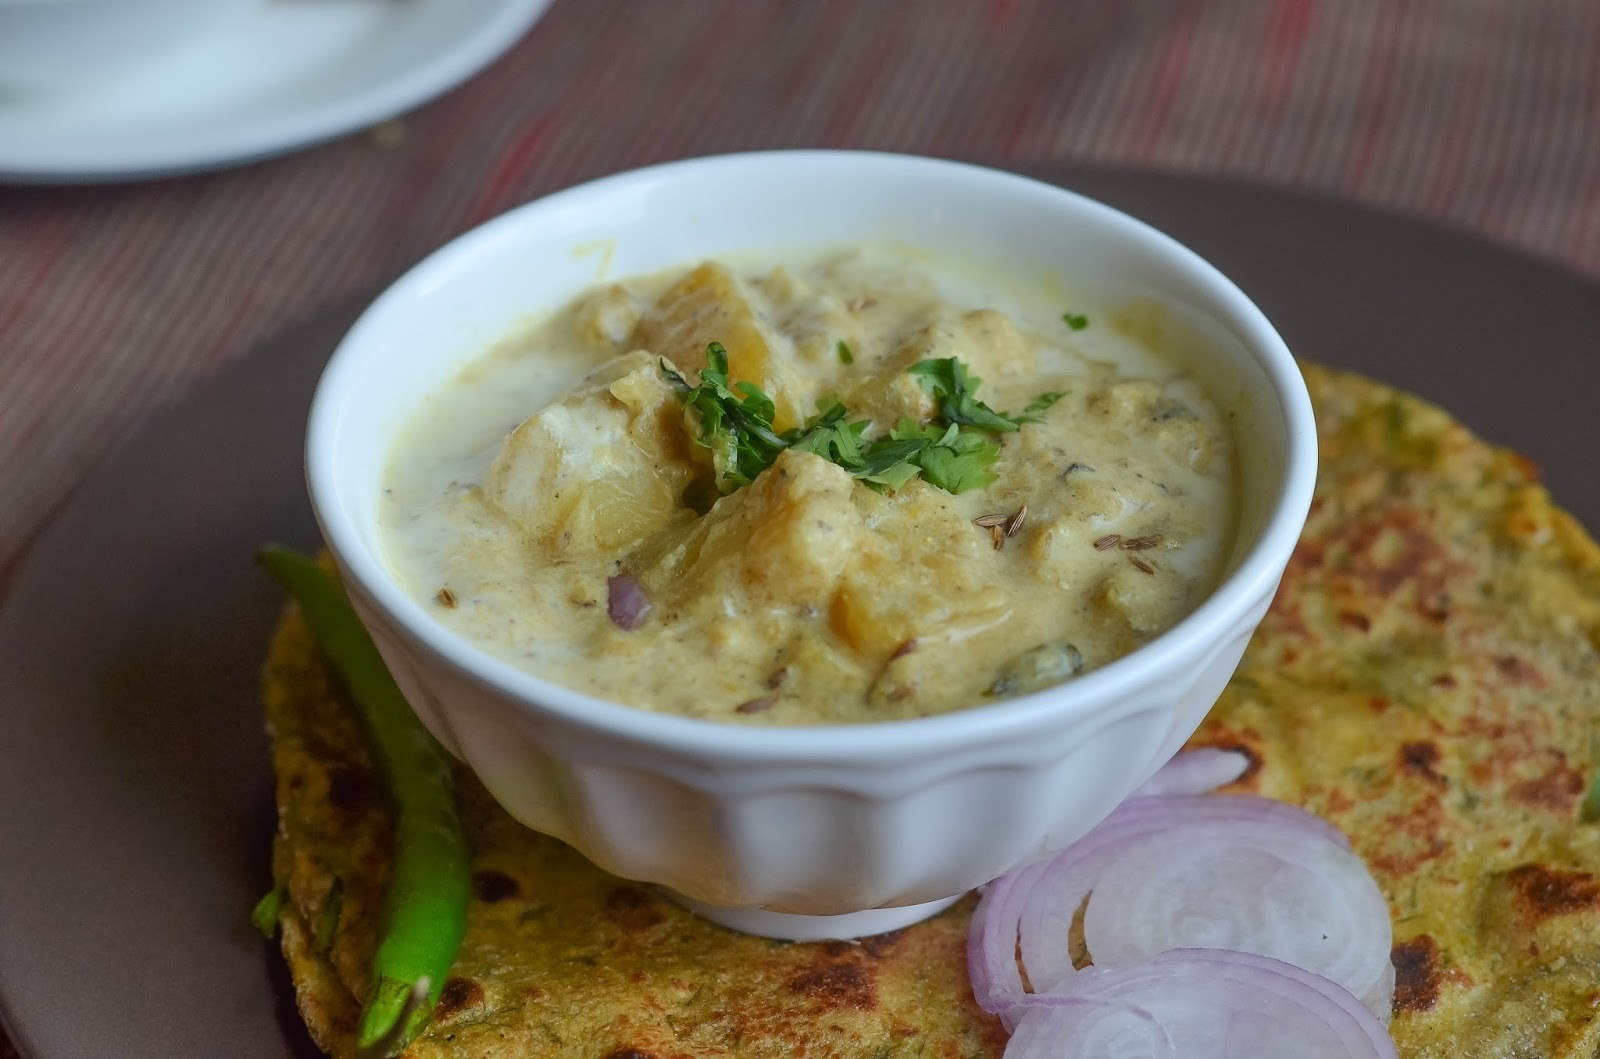 Pahari Aloo palda/Potatoes in yogurt gravy from Himachal Pradesh